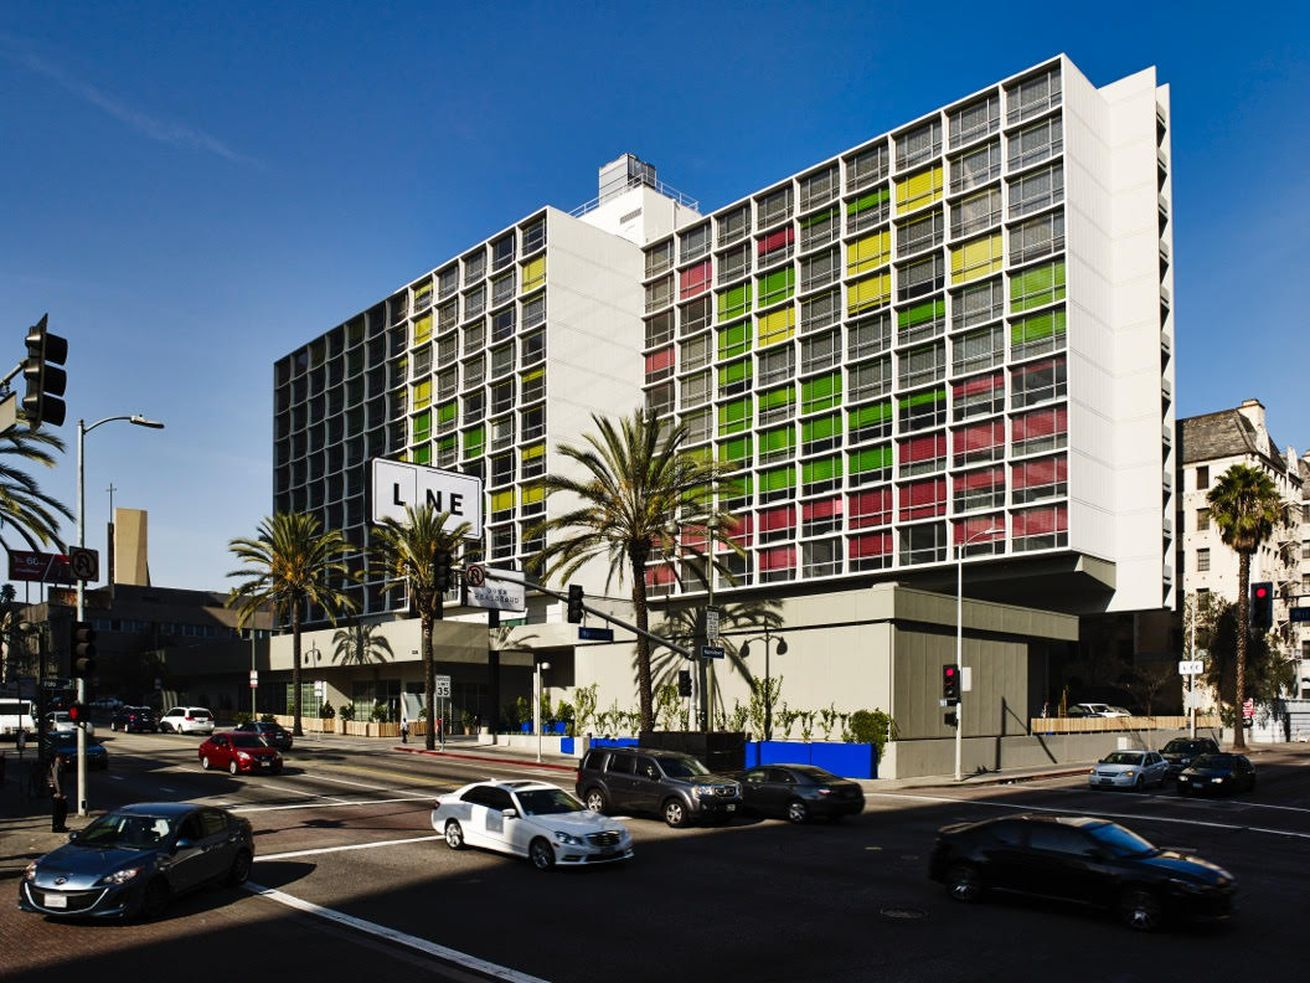 The Line Hotel in Koreatown